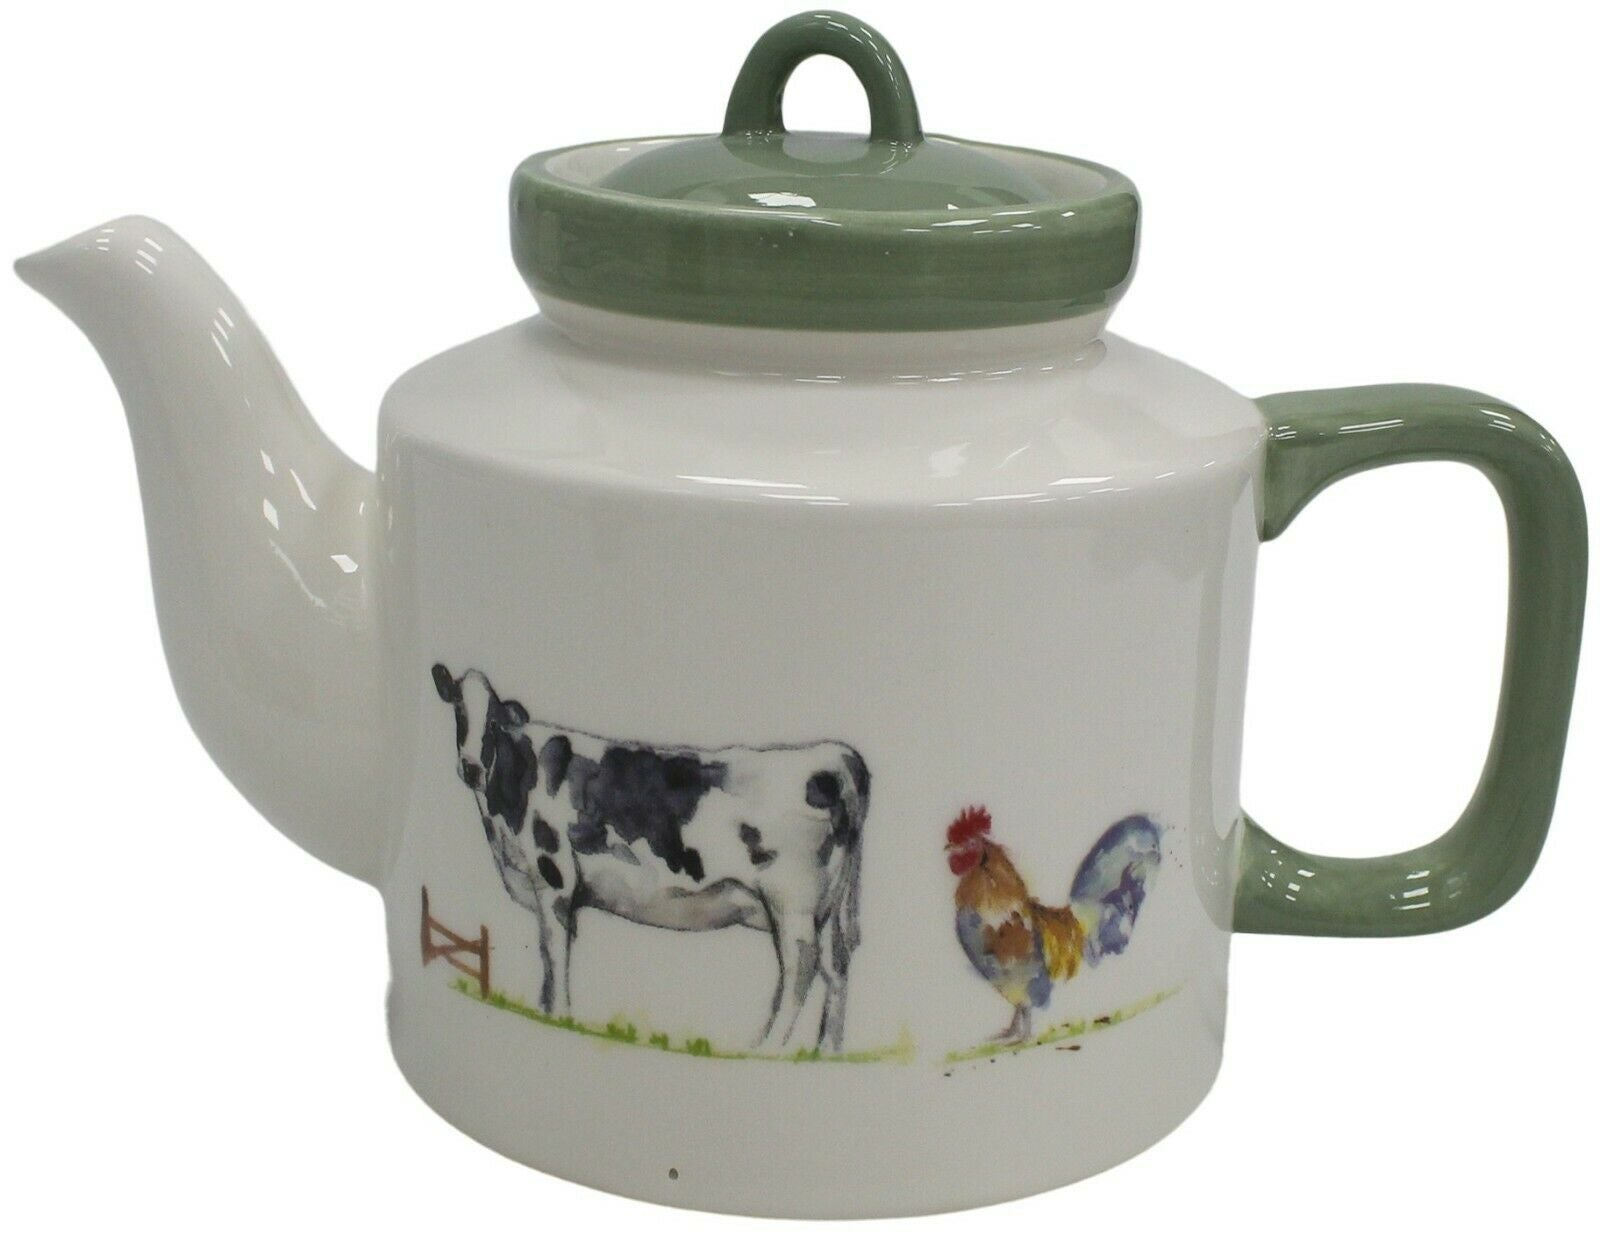 Leonardo Collection Farmyard Country 4 Cup Teapot 800ml Capacity Fine China